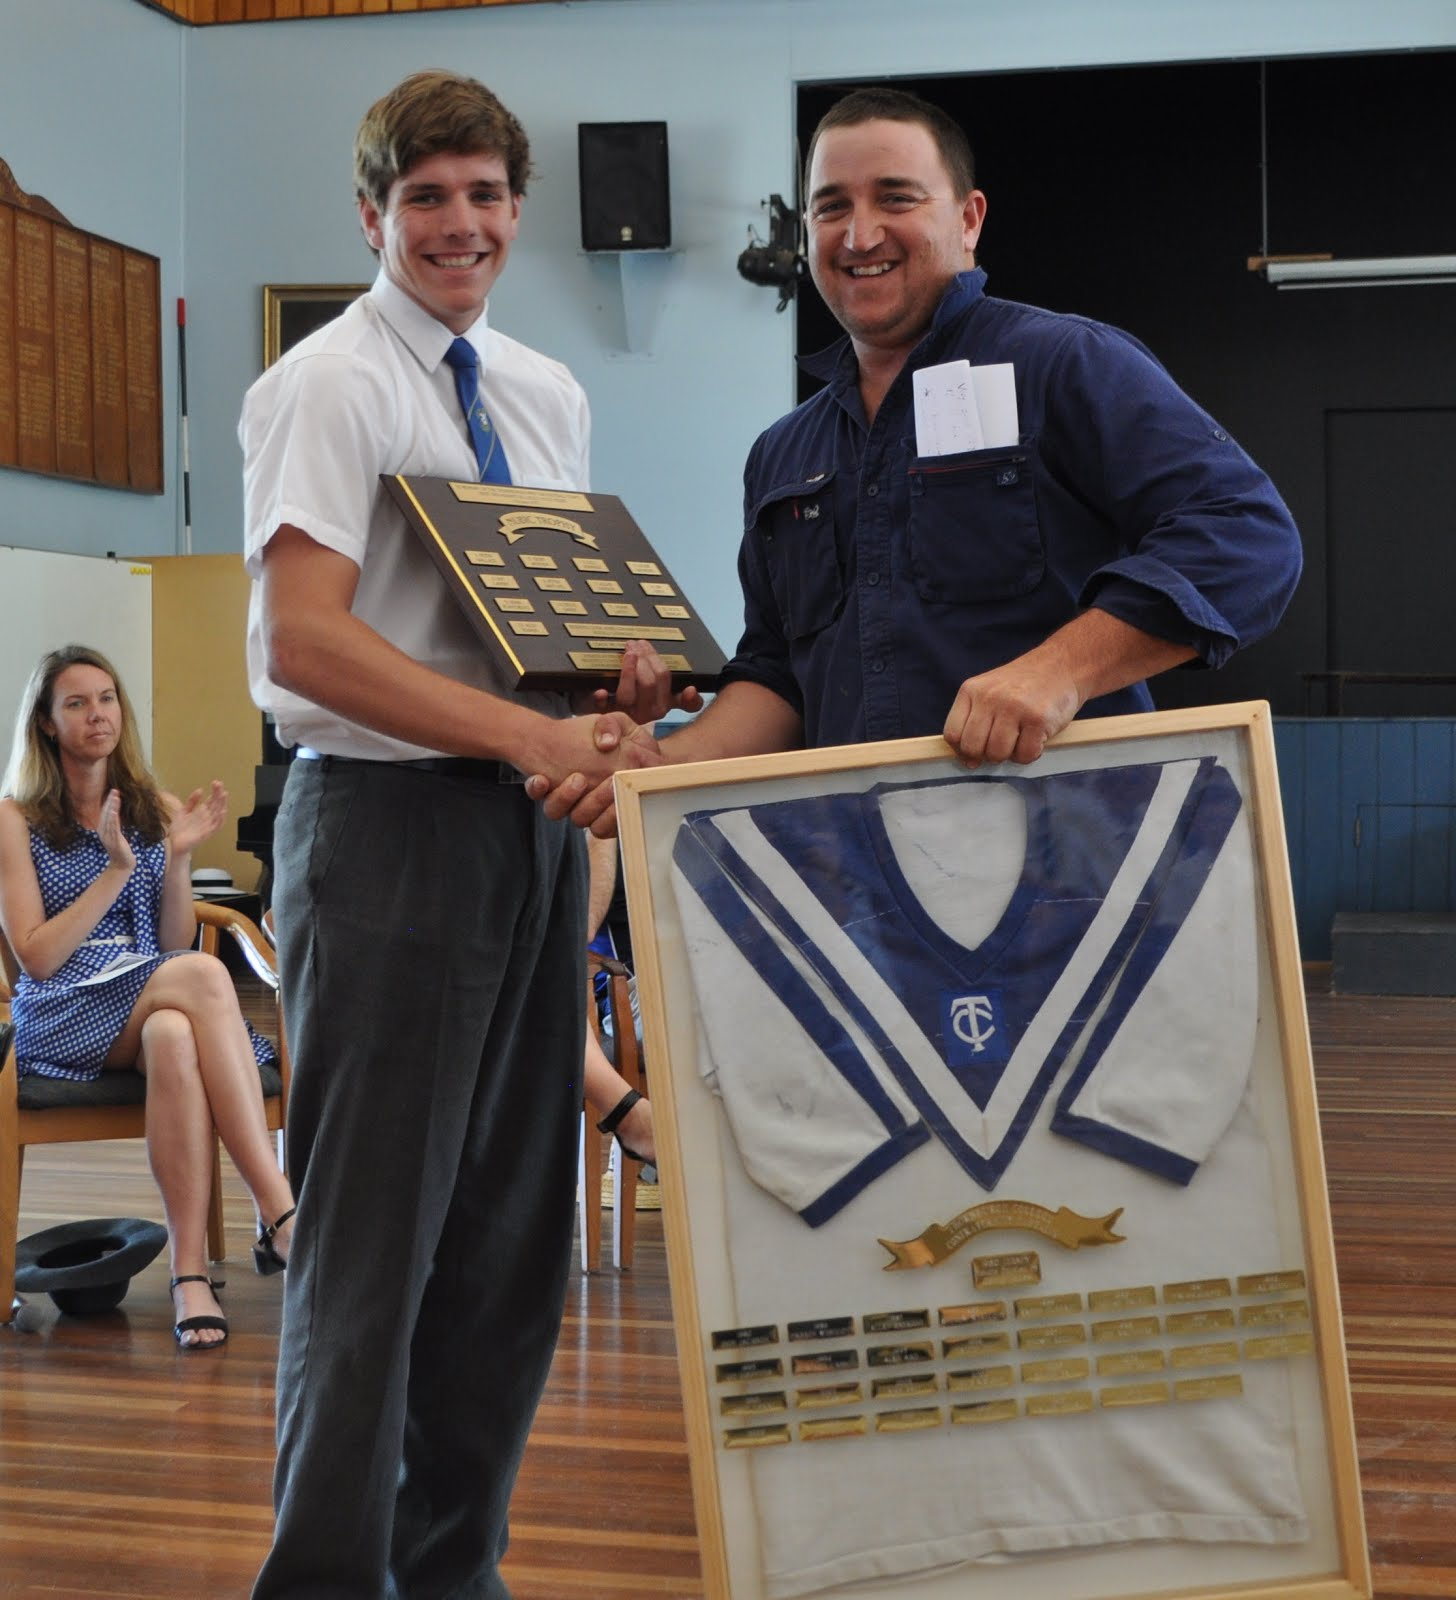 Max Batt Presents Brennan Leggett with Nubic Trophy & Original Jersey from Inaugural Confraternity